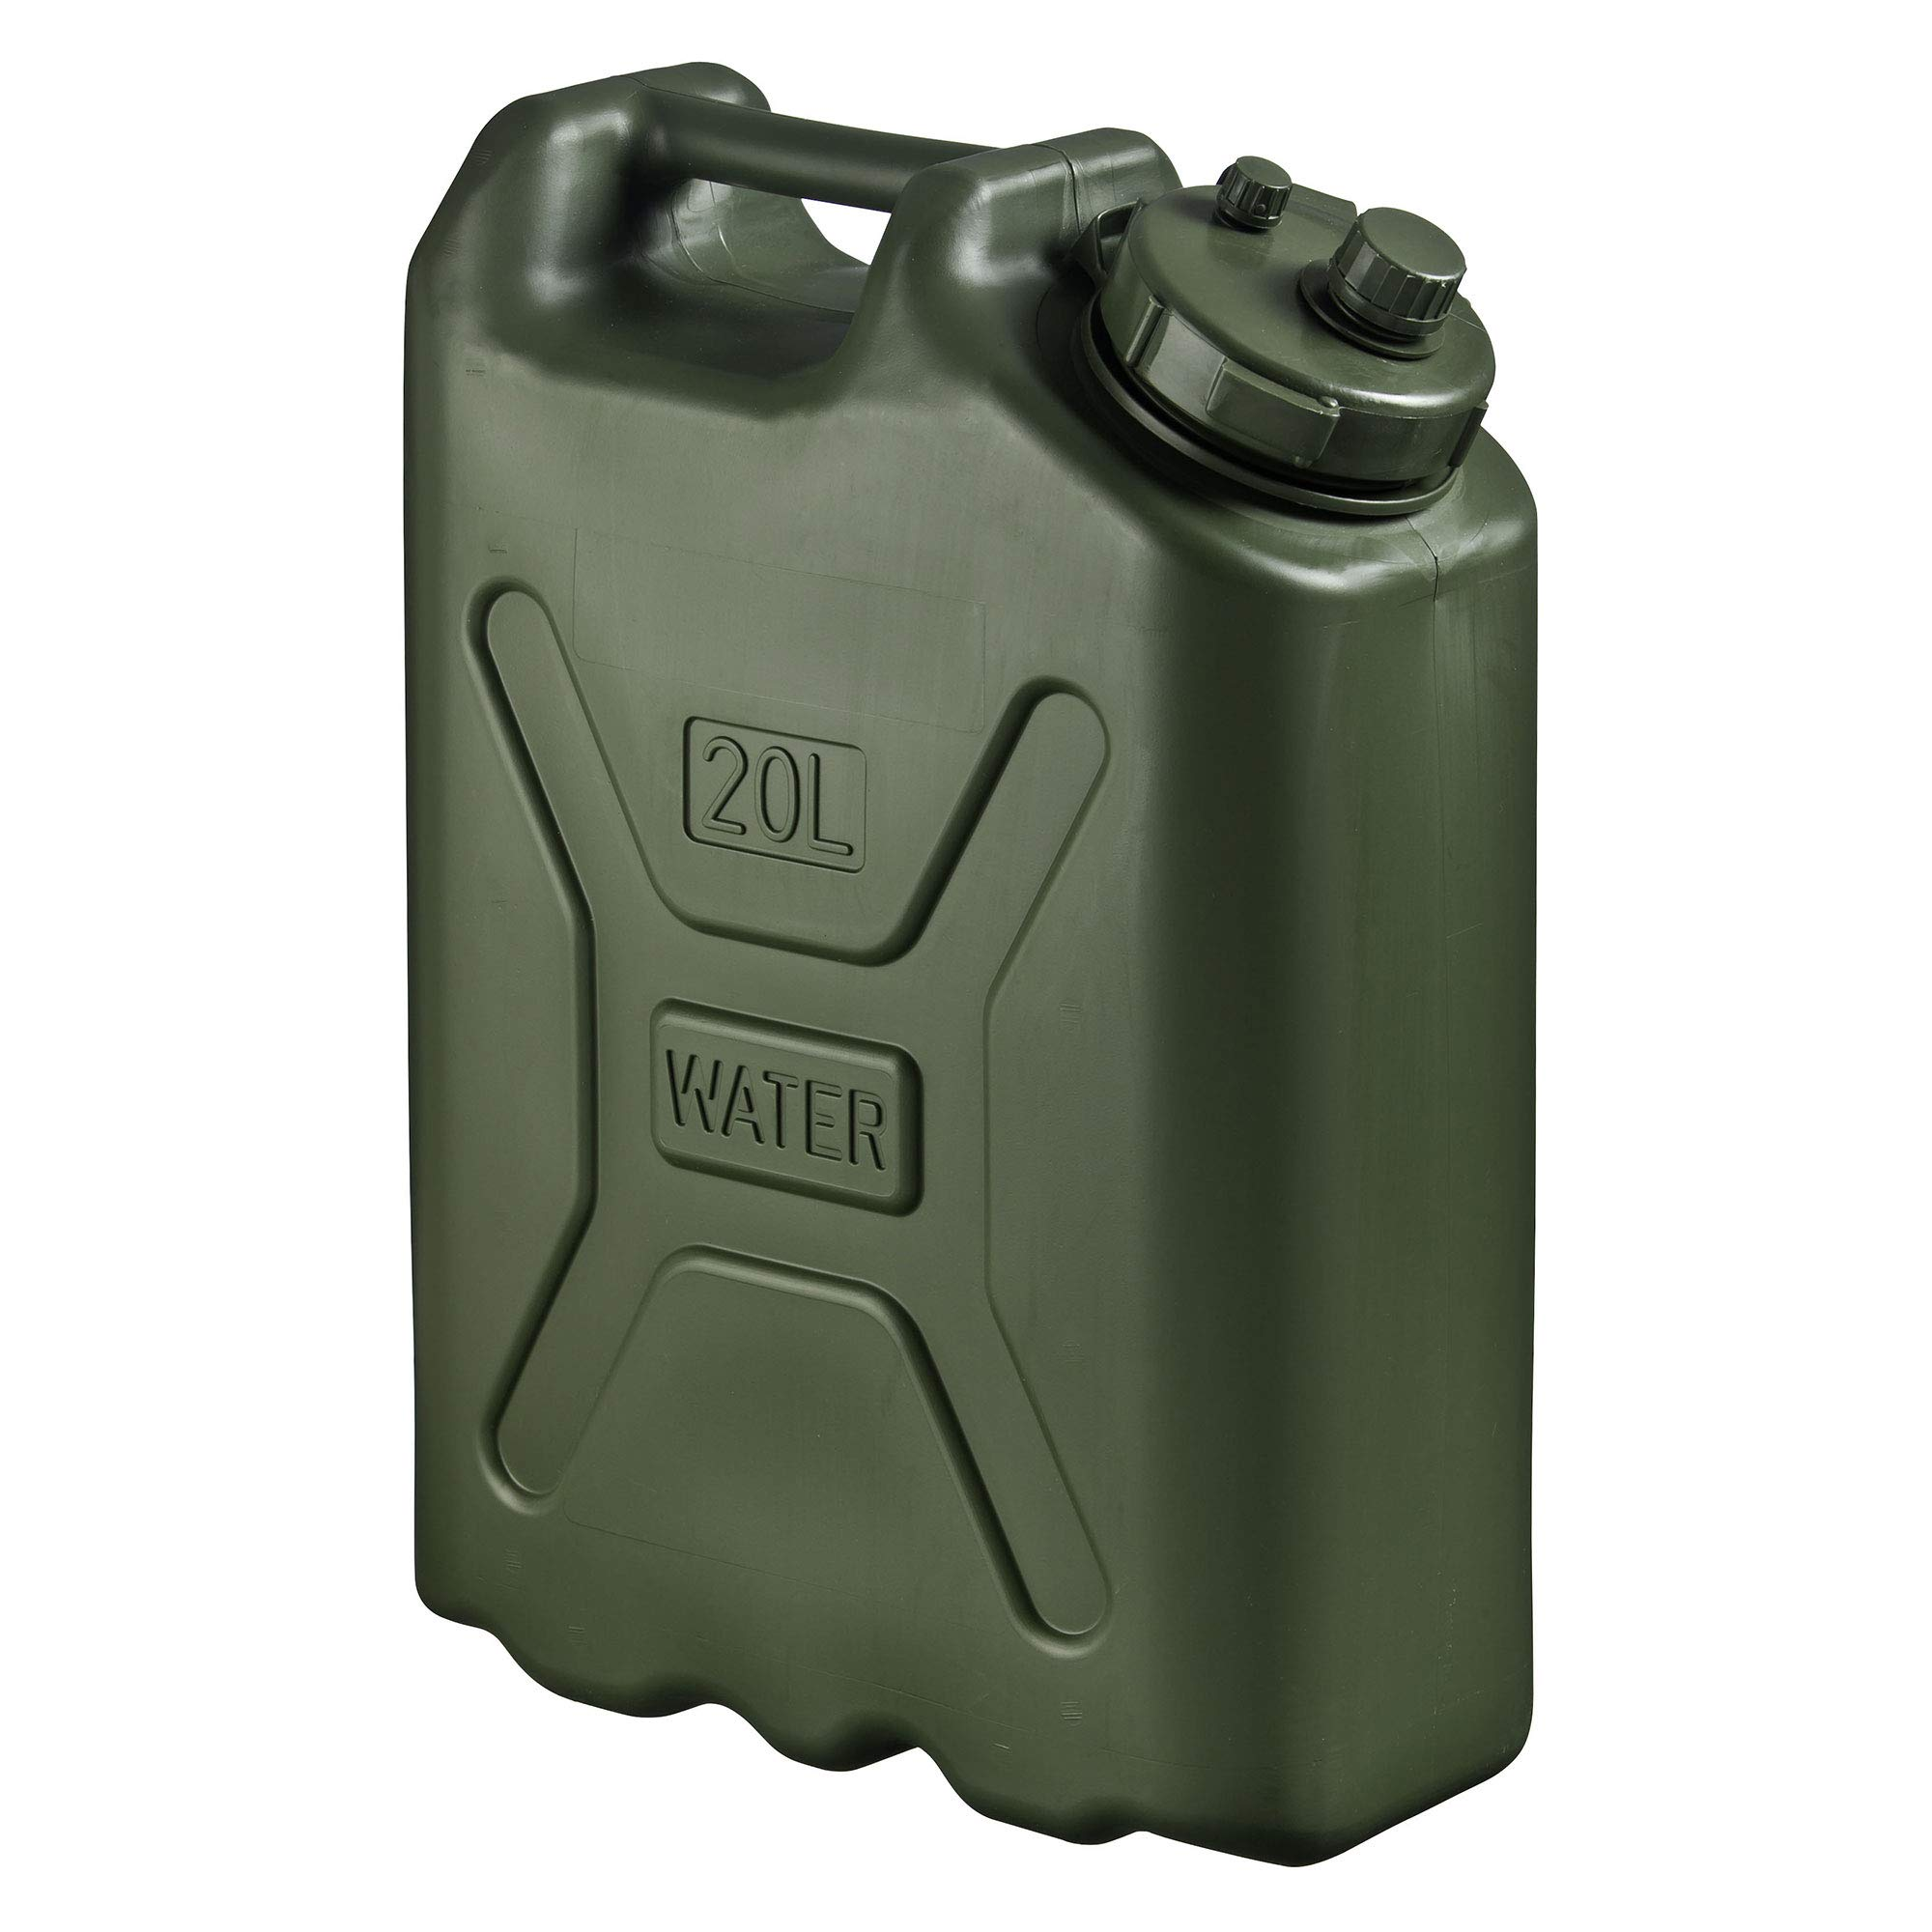 Scepter BPA Durable 5 Gallon 20 Liter Portable Water Storage Container, Green by Scepter